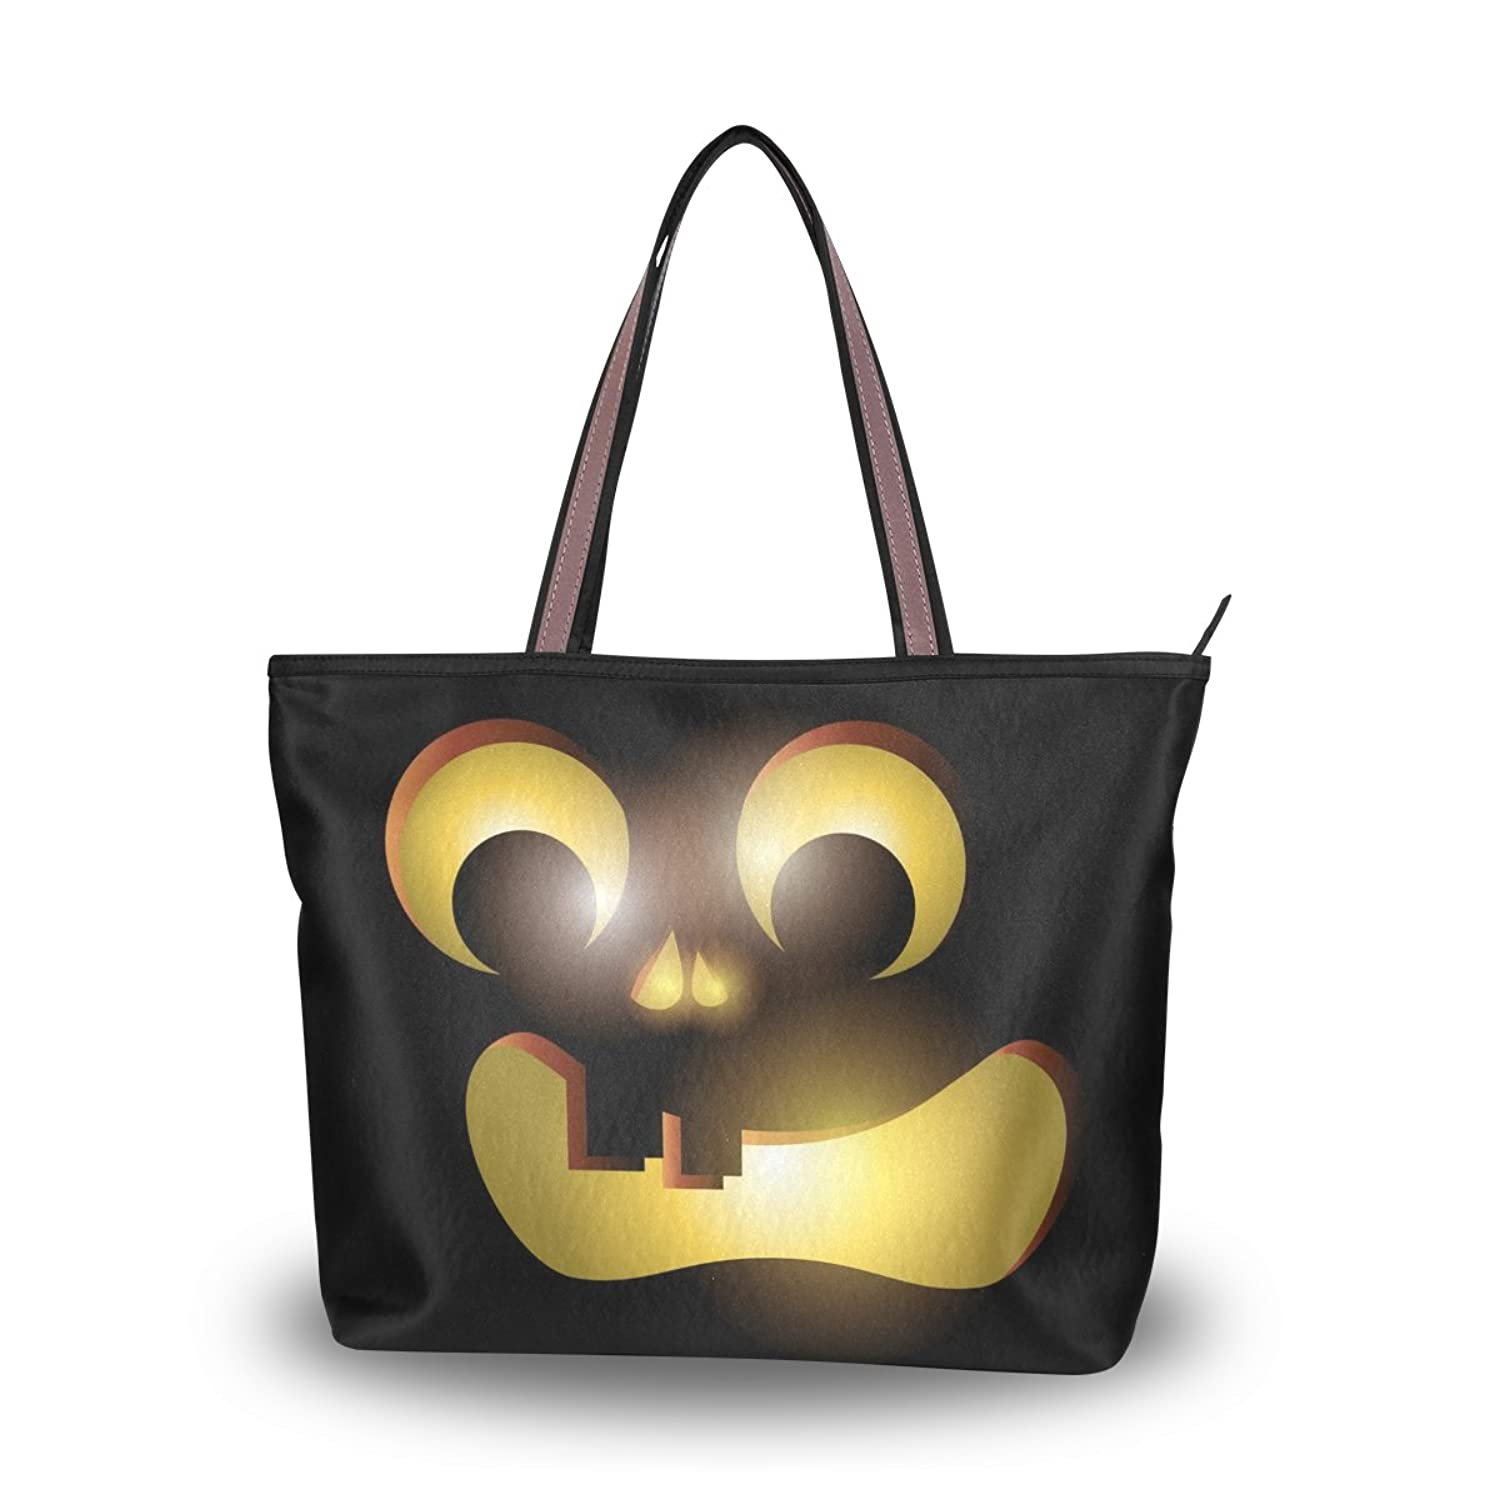 Lightweight Tote bag,Halloween Ghost Spooky Pumpkin,Handbag for Women